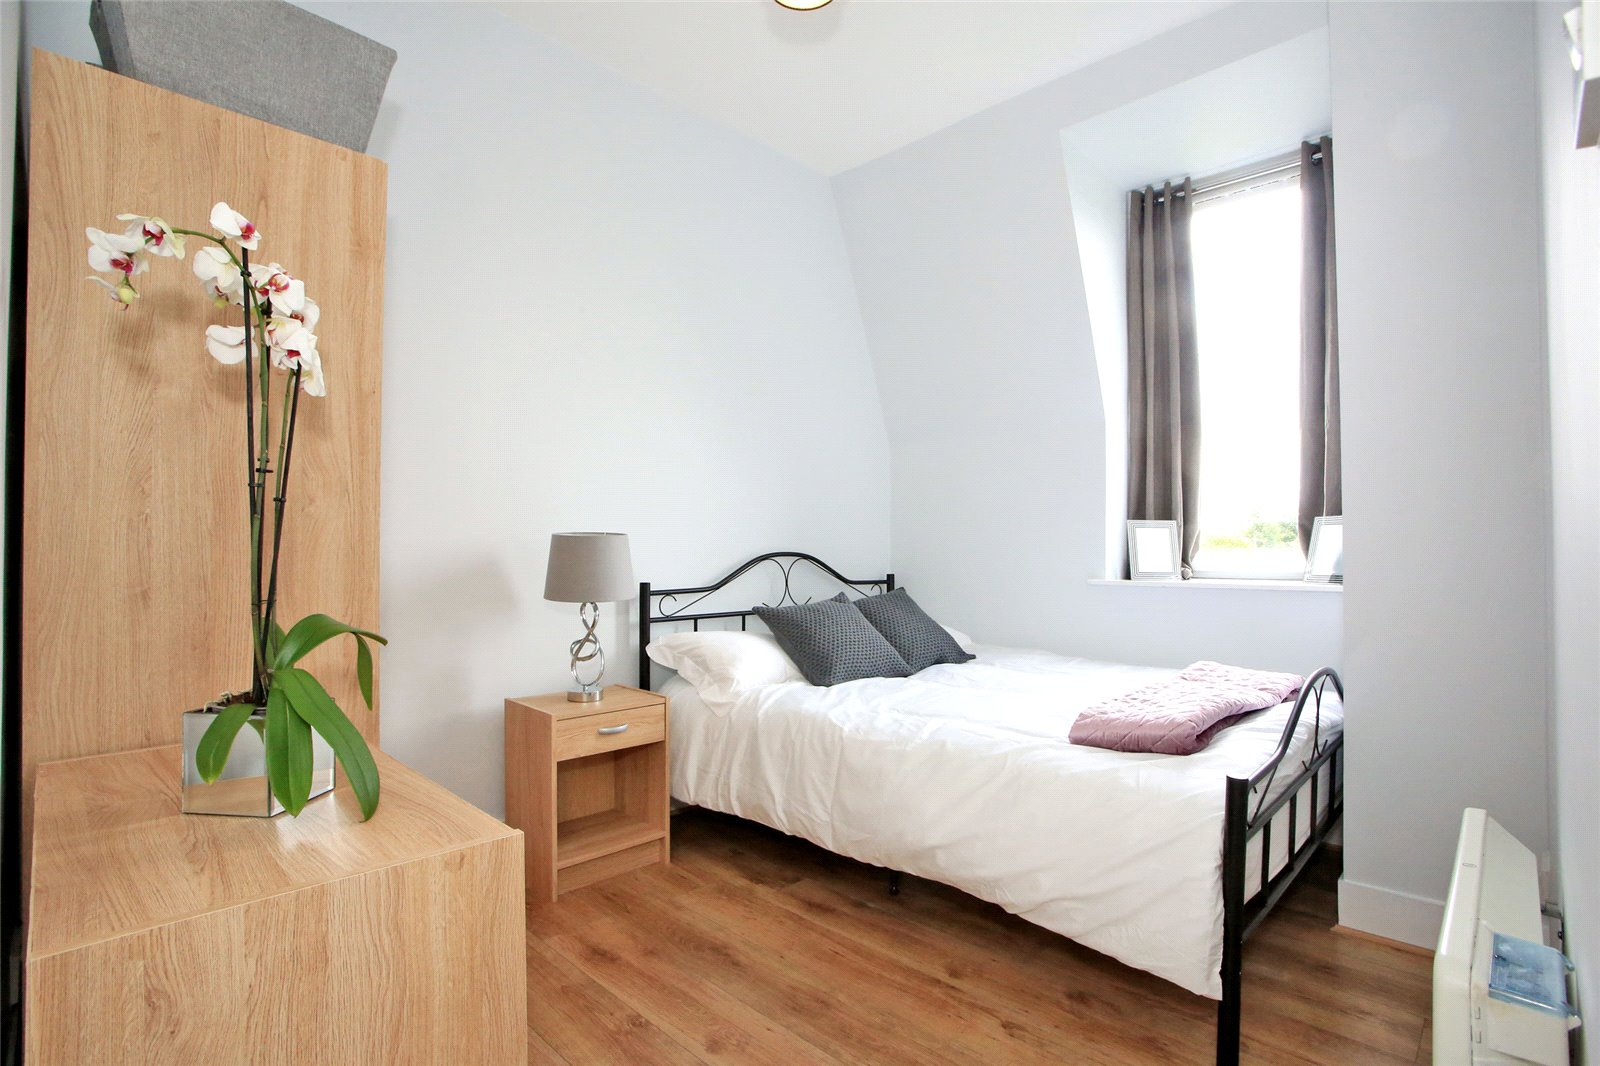 The best Aberdeen flats for under £500pcm